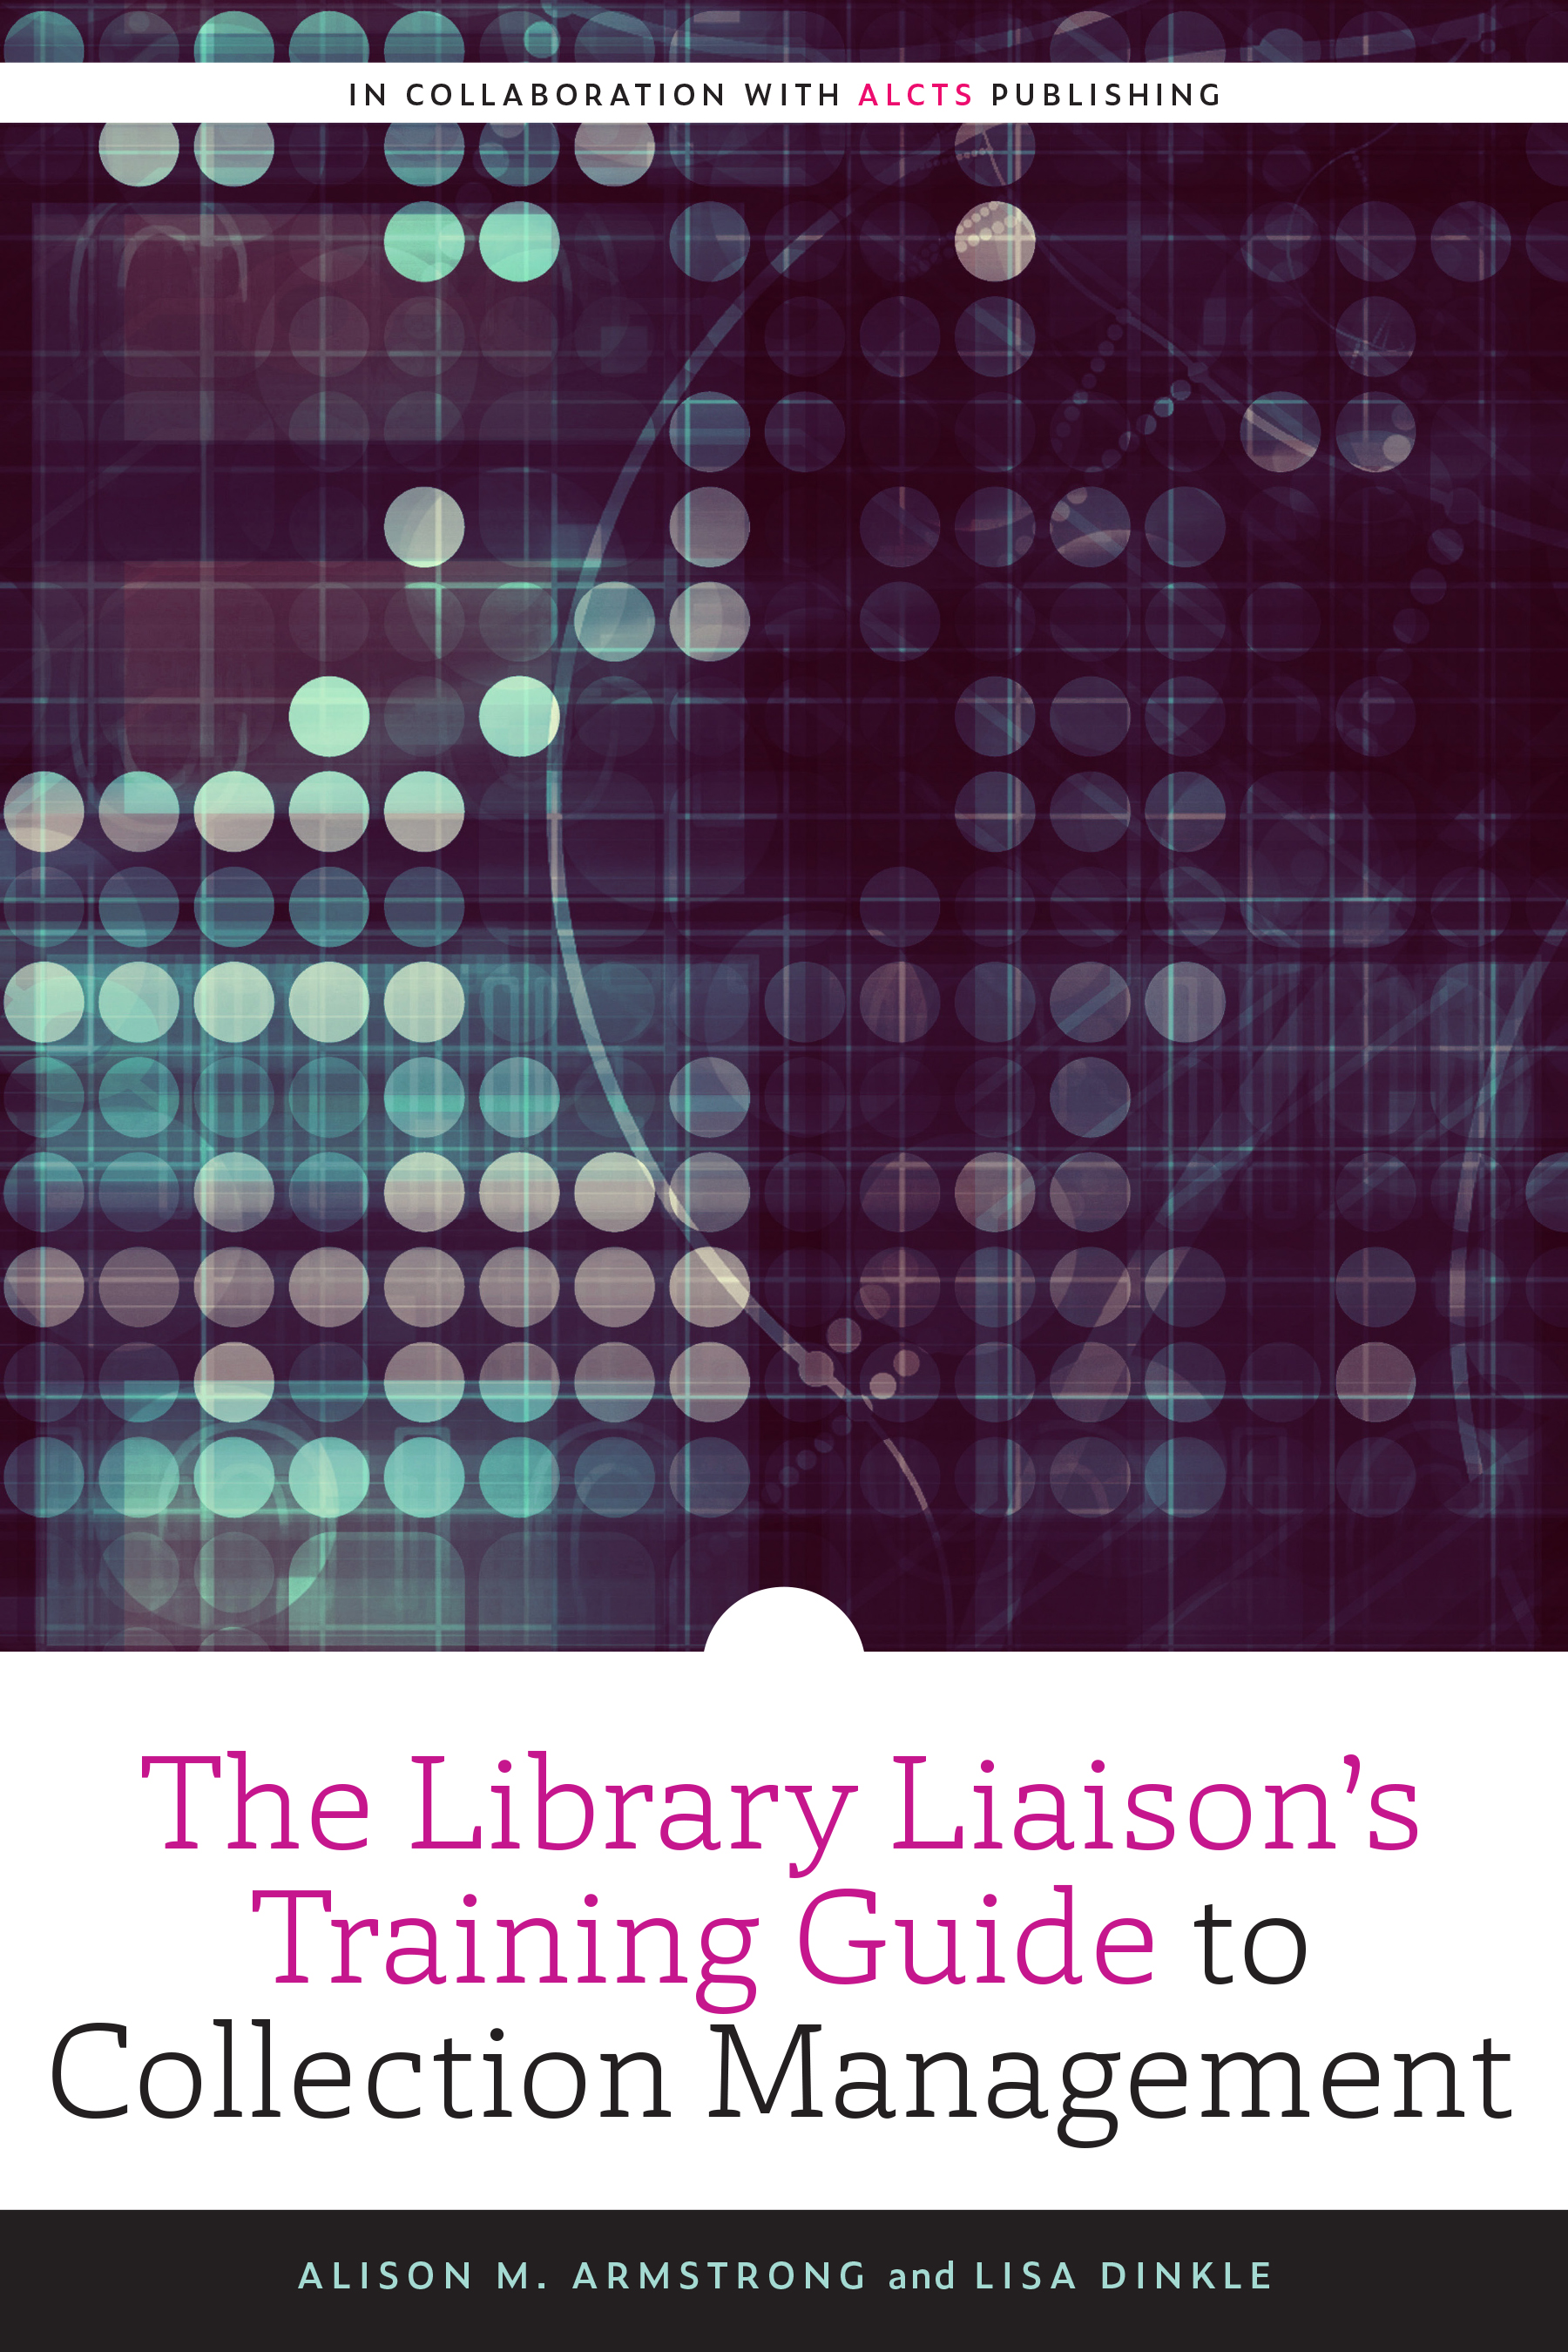 book cover for The Library Liaison's Training Guide to Collection Management